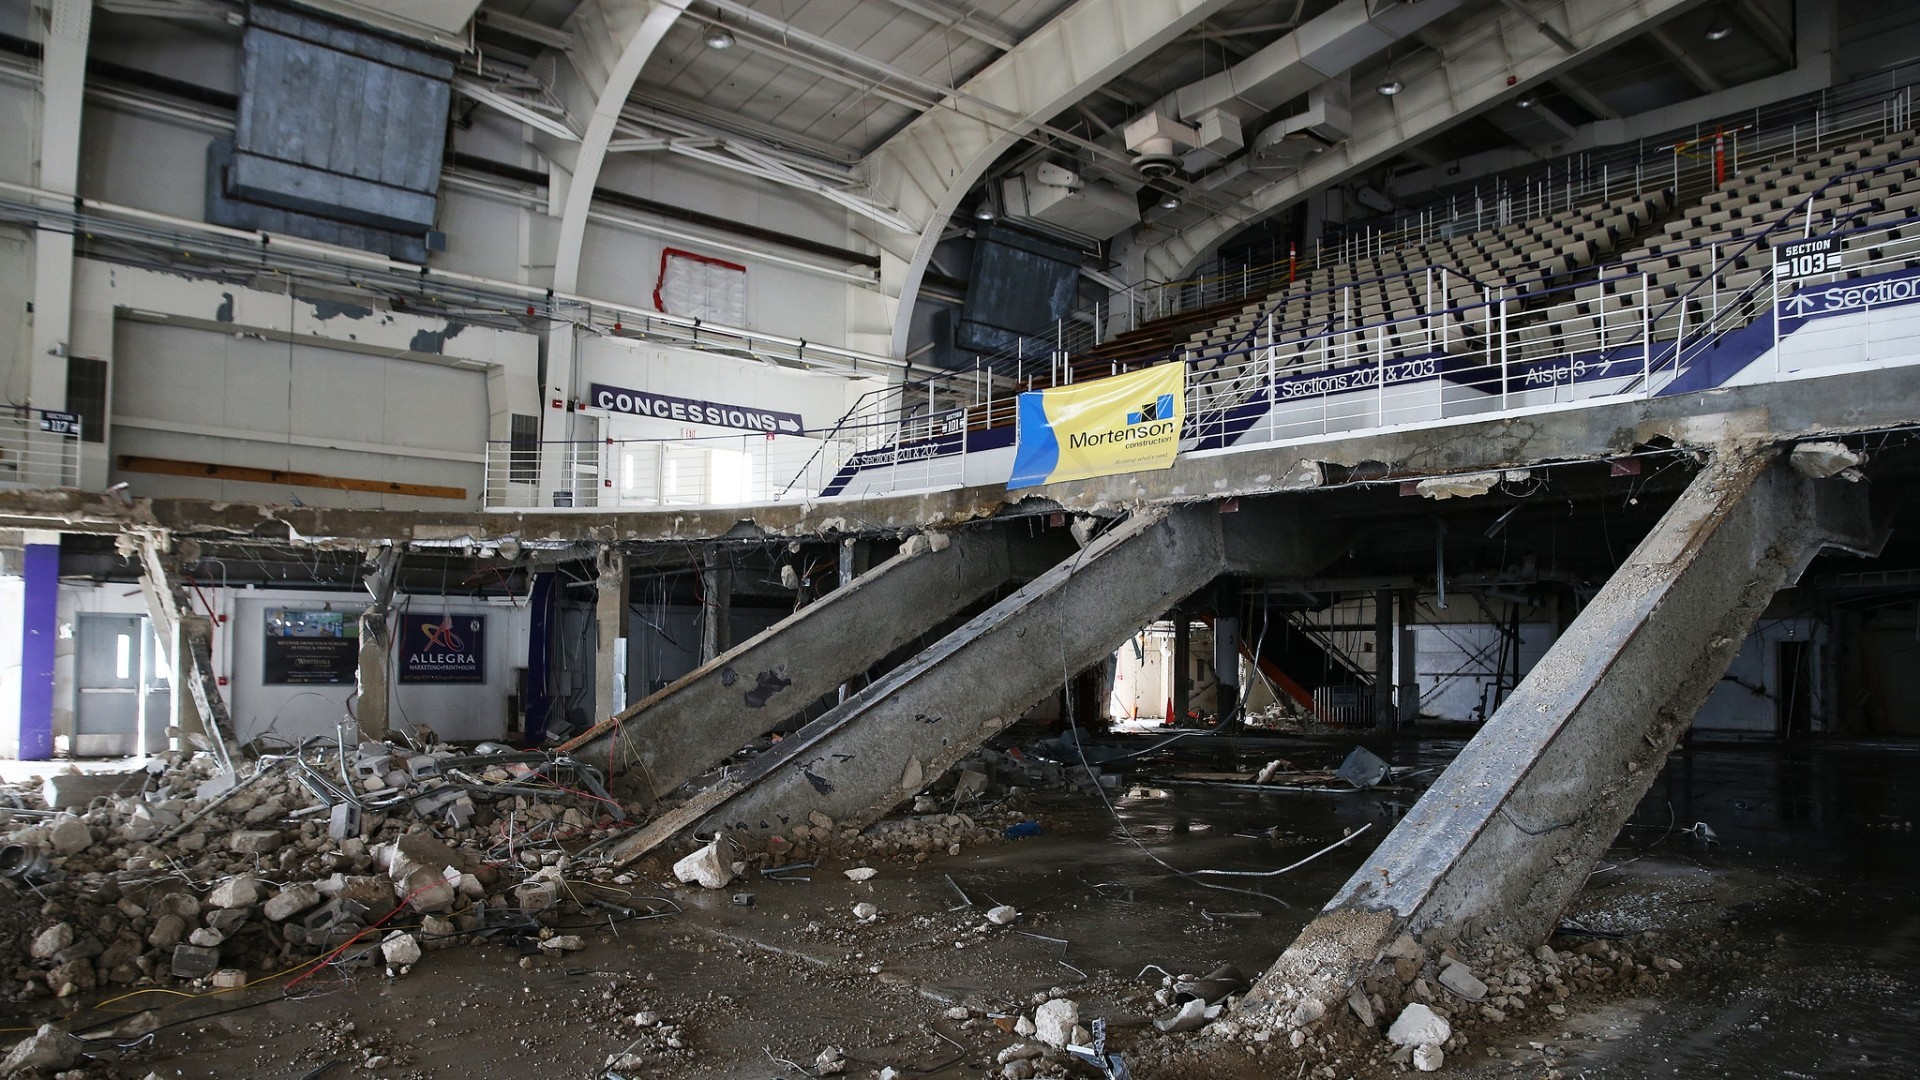 Ct-demolition-of-welsh-ryan-arena-makes-space-for-new-facility-video-20170501